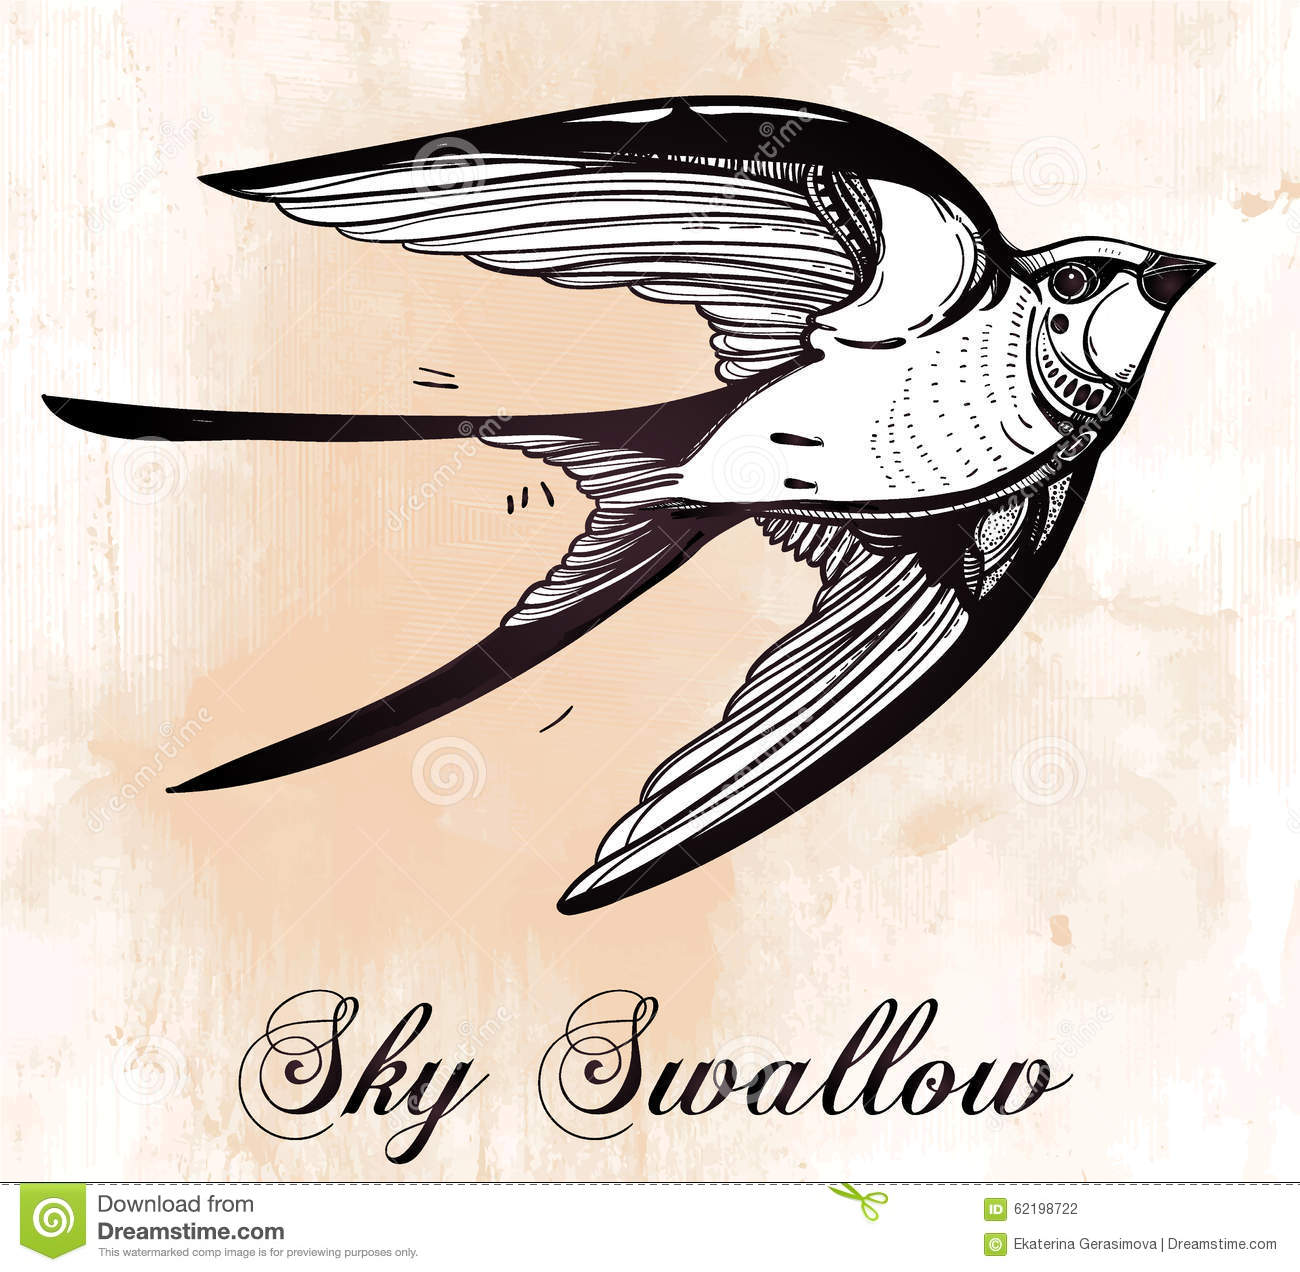 Set of sketches of flying swallows stock vector illustration - Royalty Free Vector Art Bird Drawn Elegant Flying Illustration Retro Style Swallow